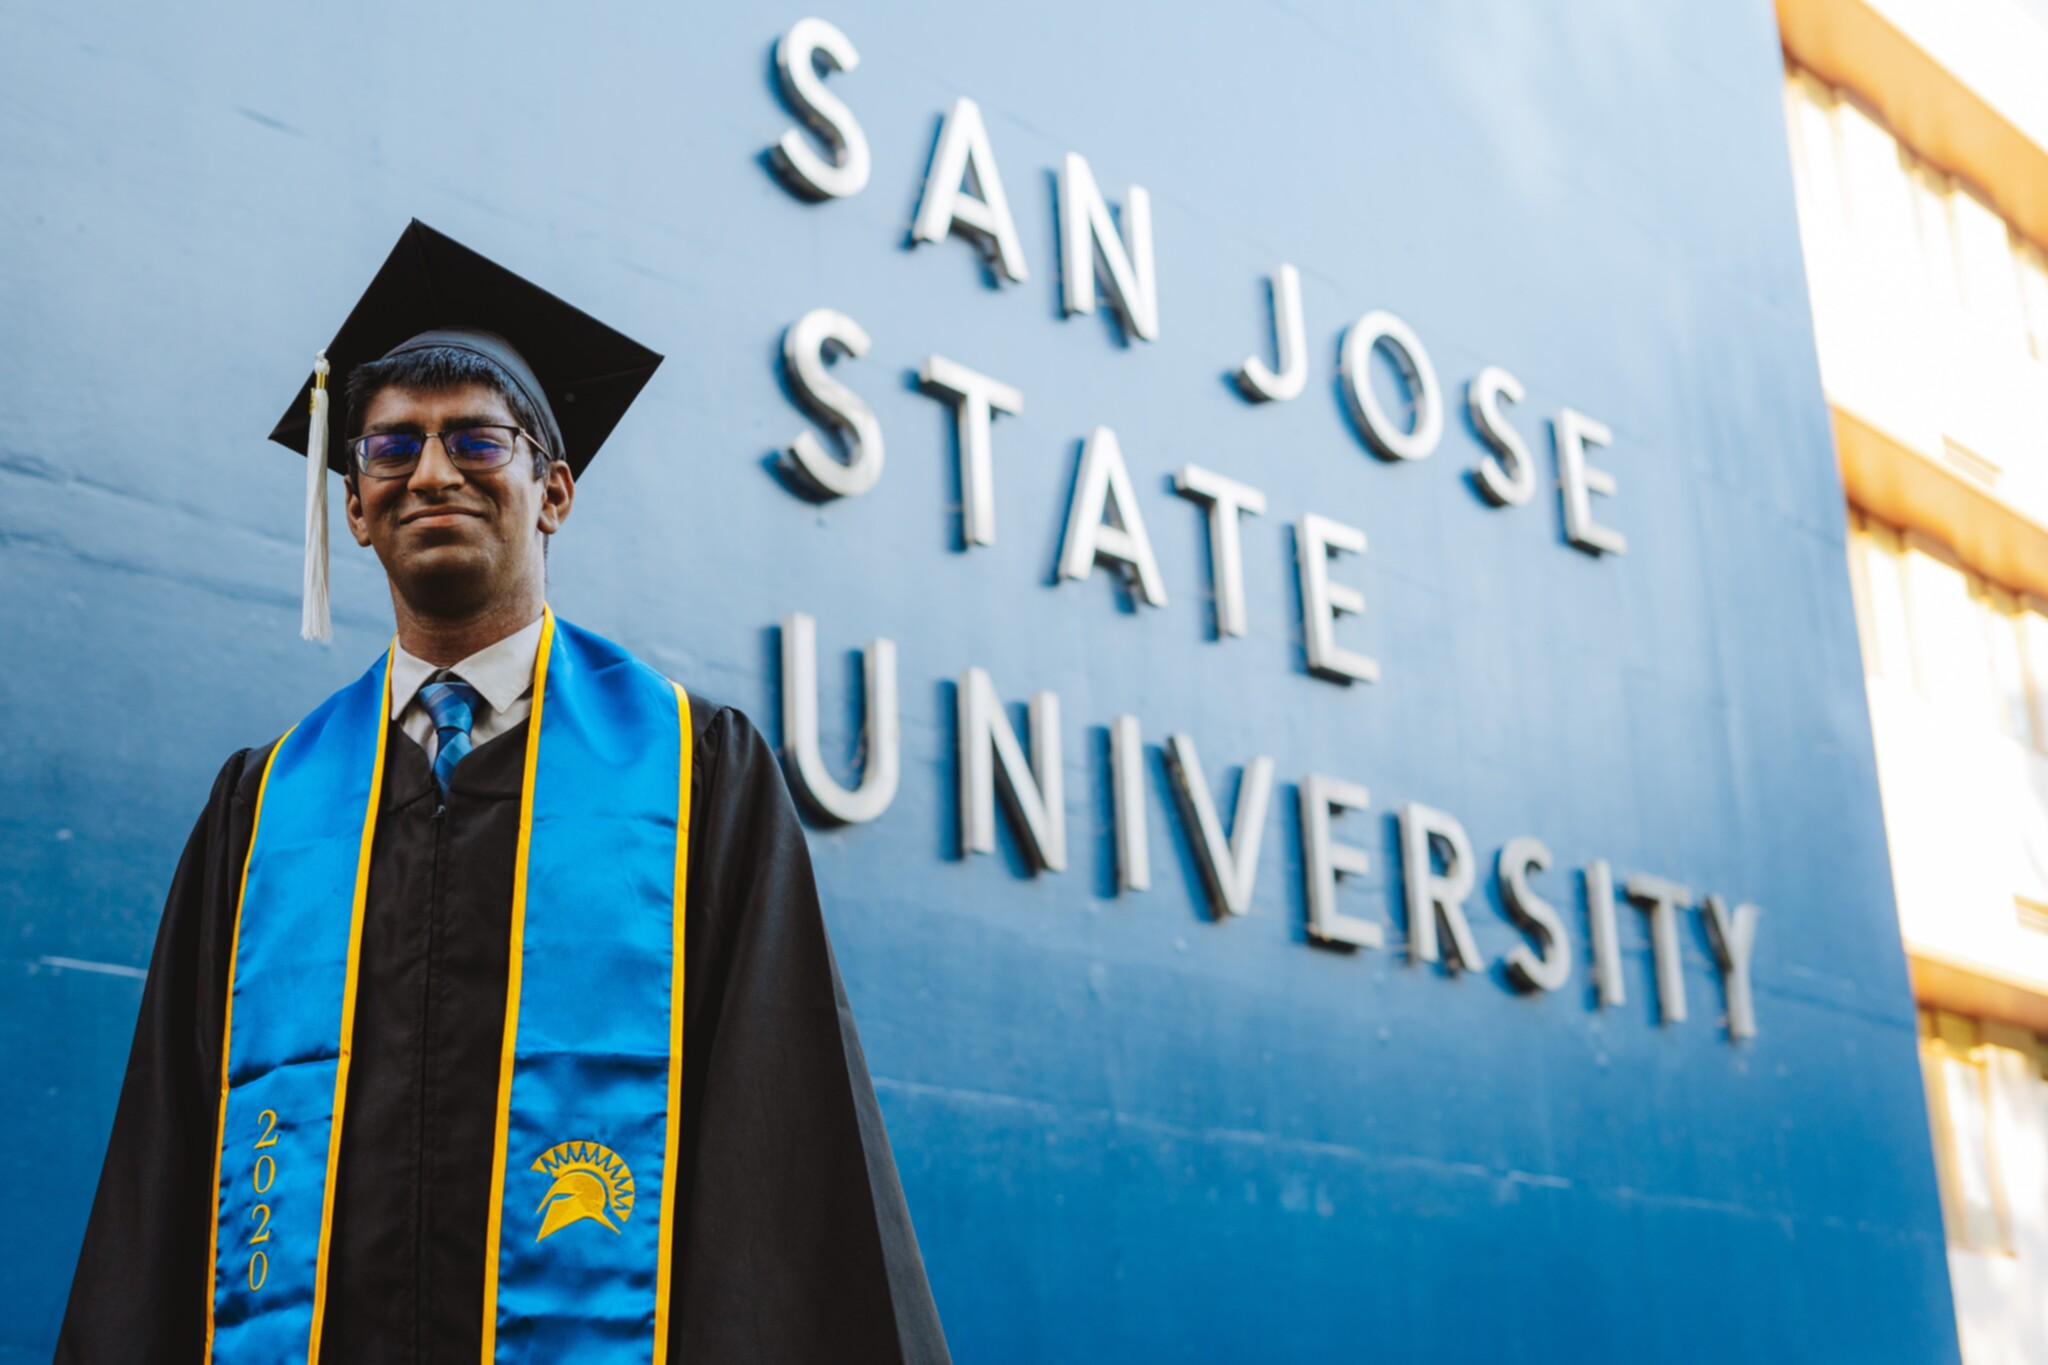 Me, wearing my cap and gown, in front of the San Jose State University sign